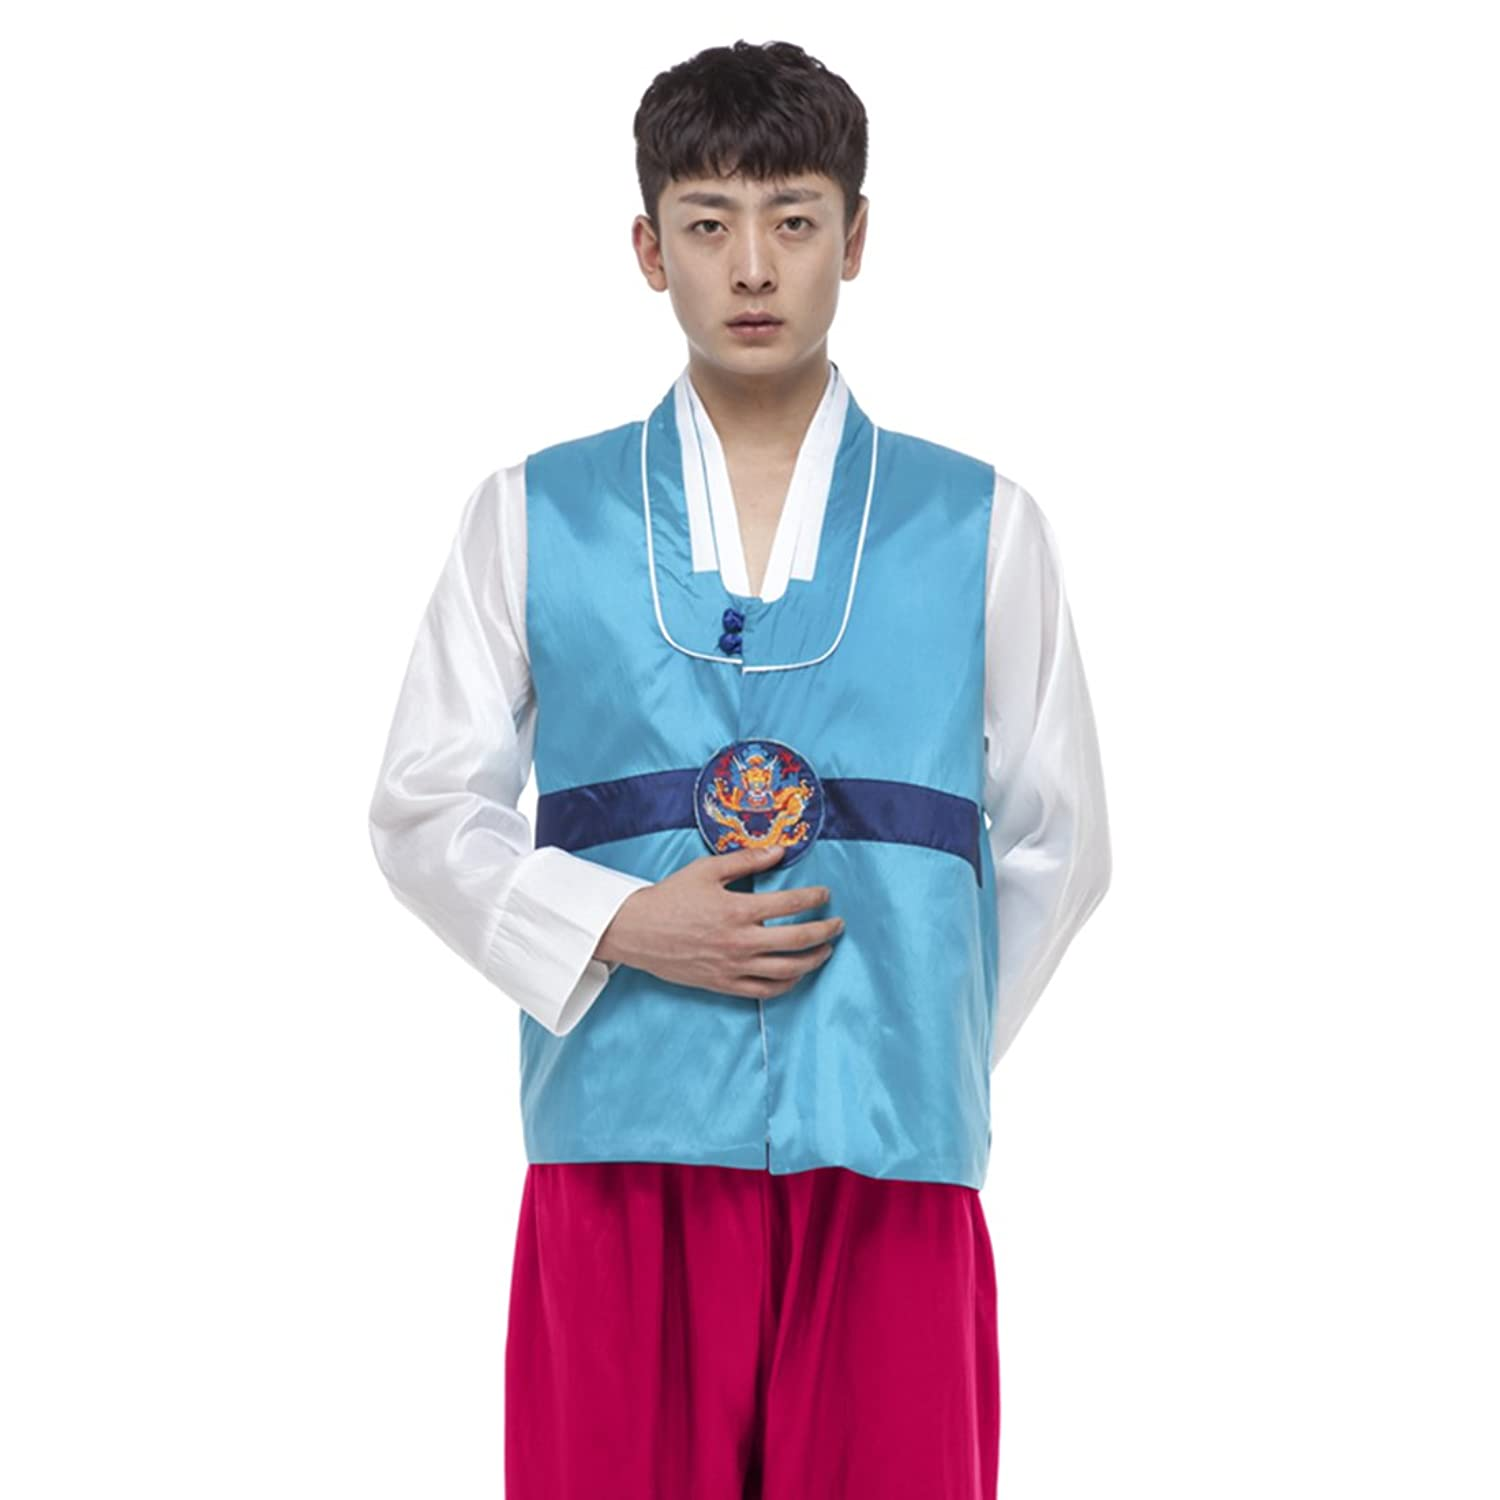 9a80722499cd Lemail Wig Korean Traditional Costume Hanbok Men Set Sc 1 St Amazon.com